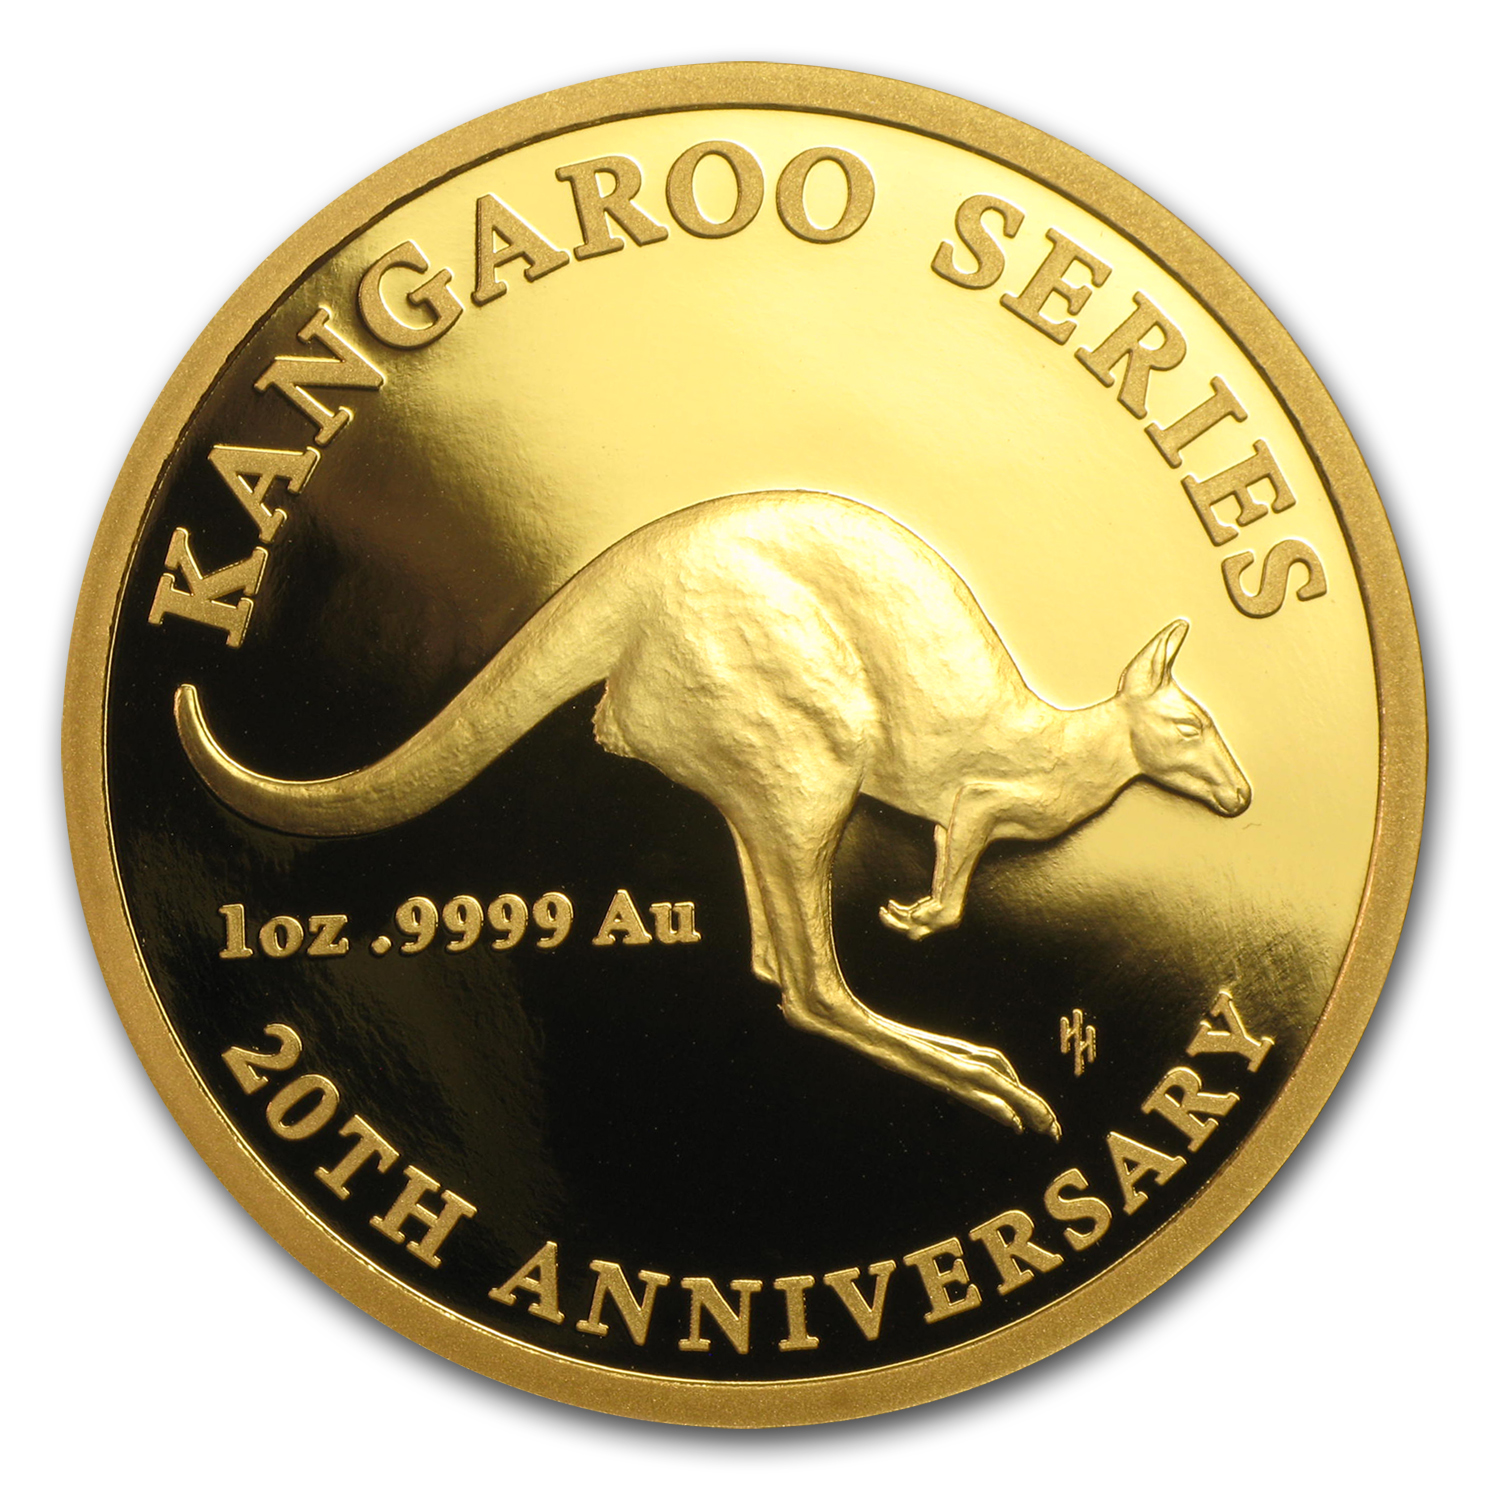 2013 1 oz Gold Royal Australian Mint $100 20th Anniv Kangaroo Prf